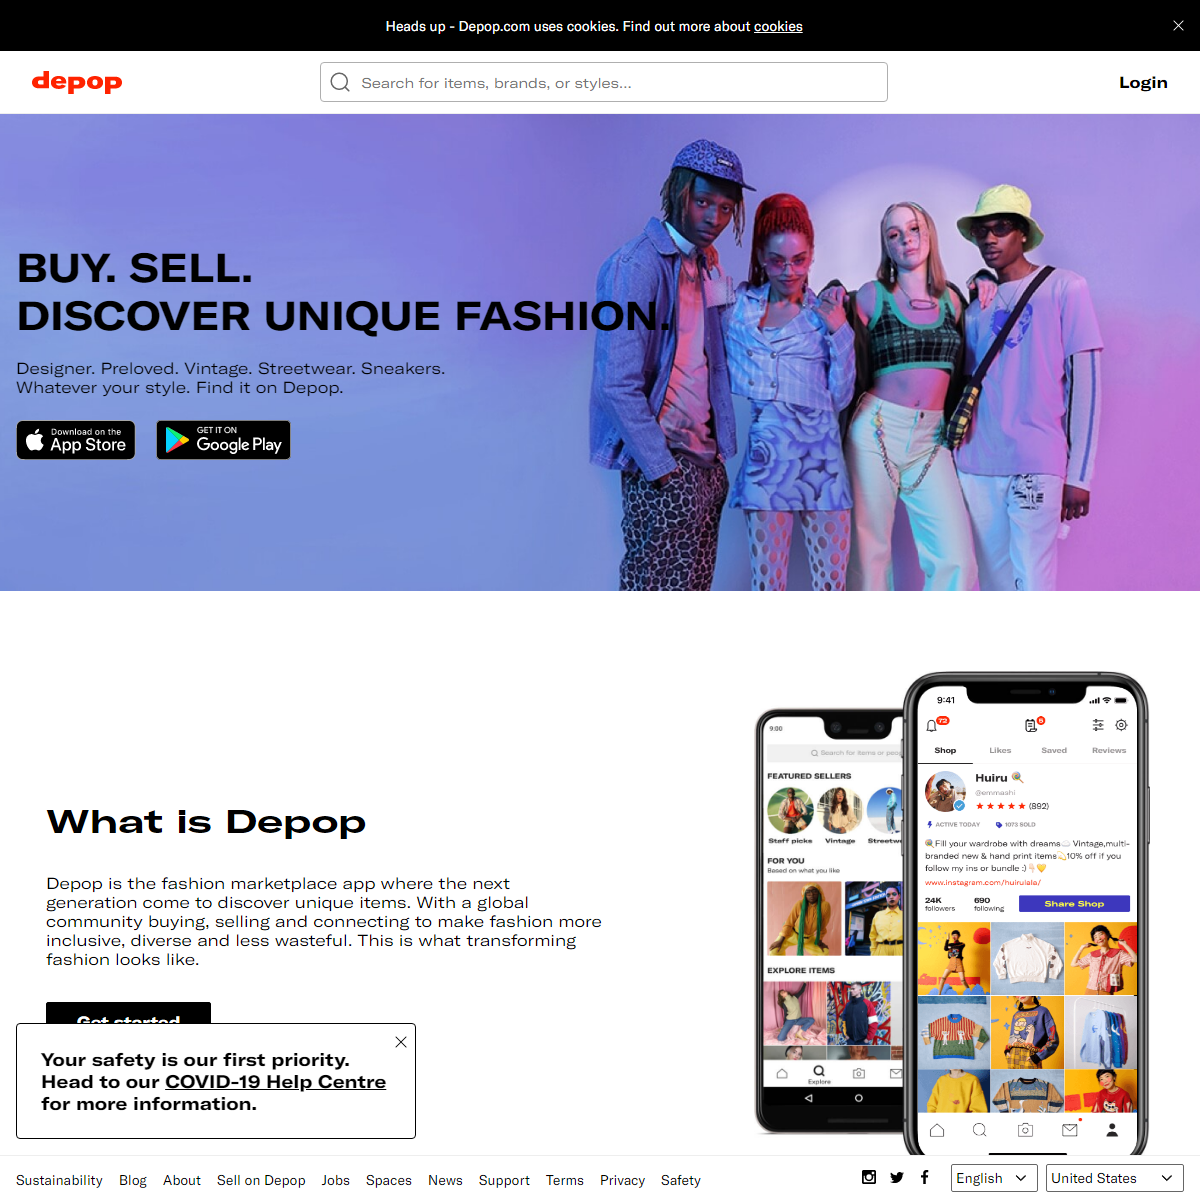 Depop - buy, sell, discover unique fashion